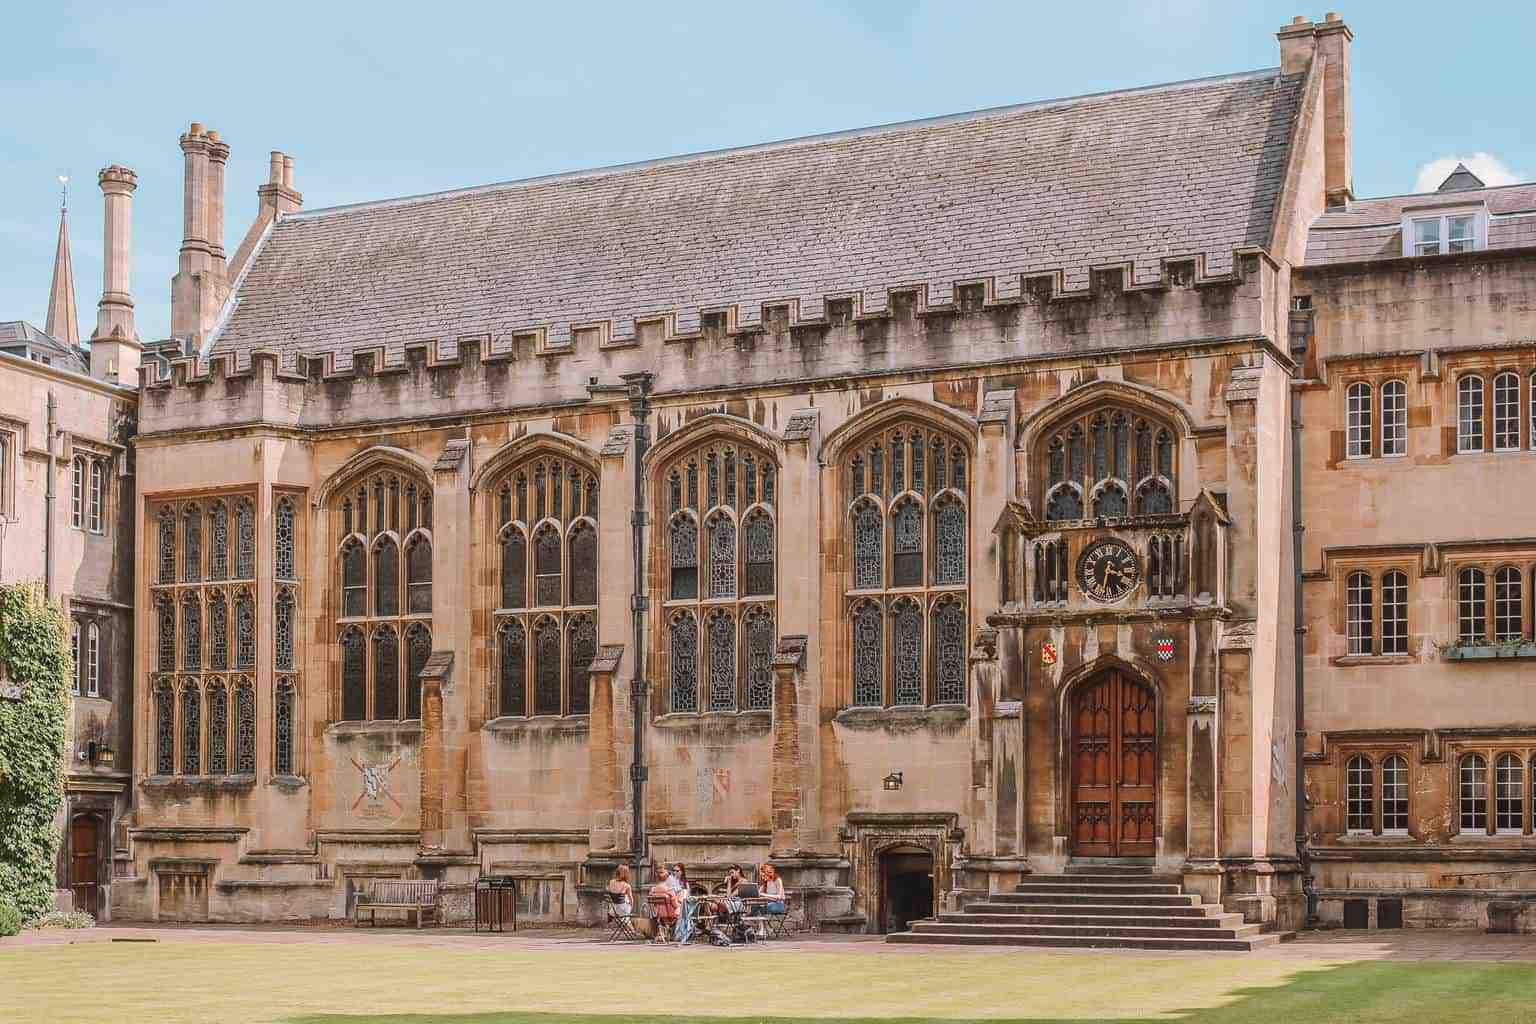 10 Most Beautiful Colleges at Oxford University According to a Student